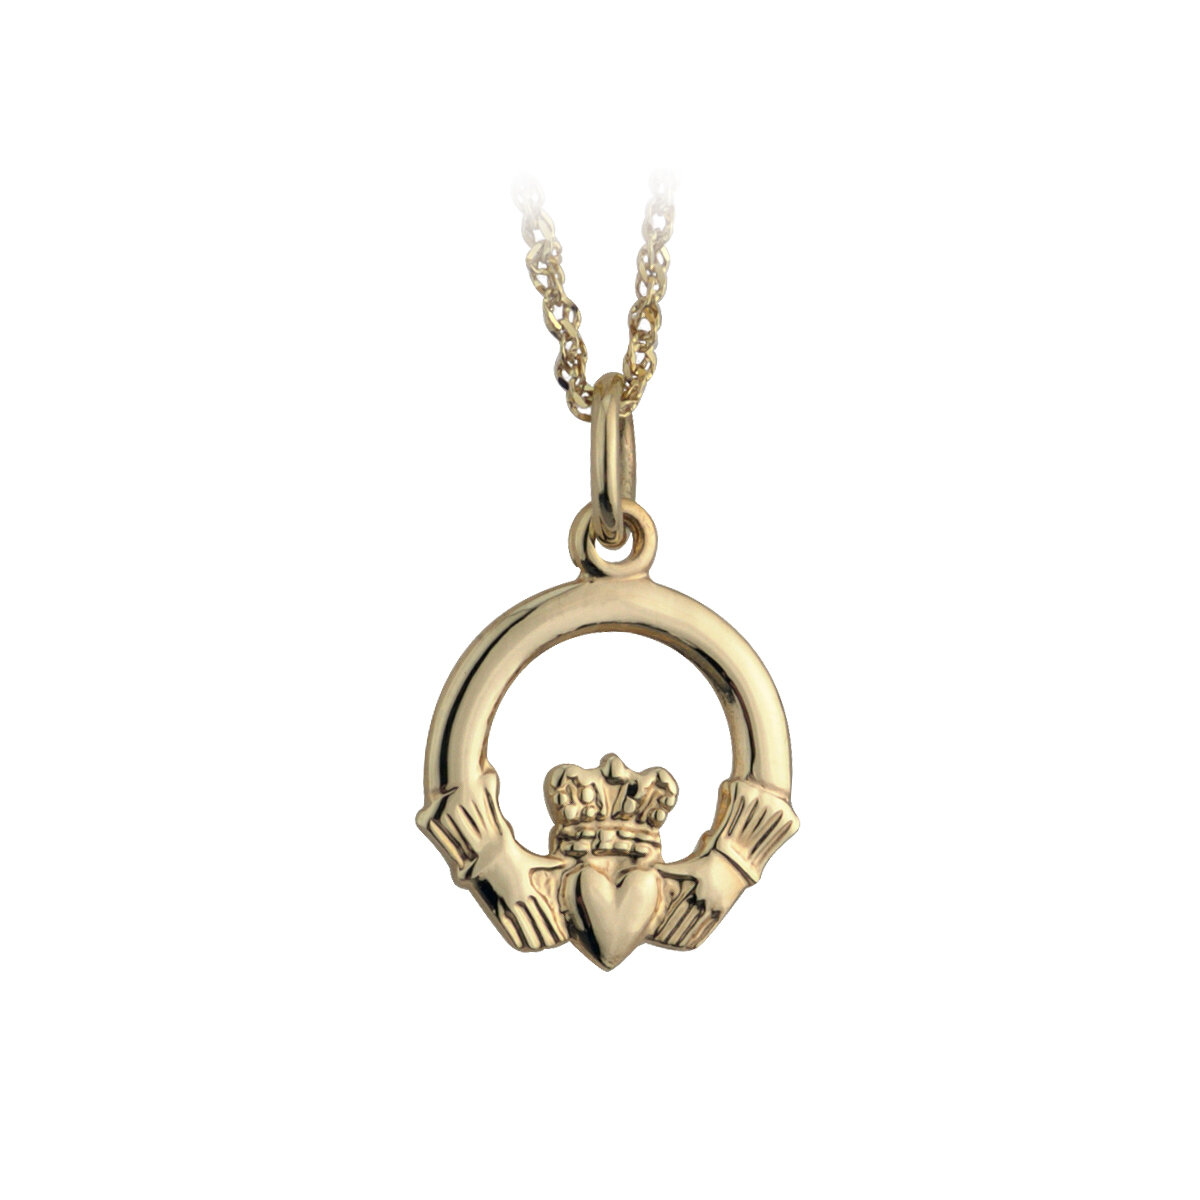 10k gold claddagh pendant small s4276 from Solvar